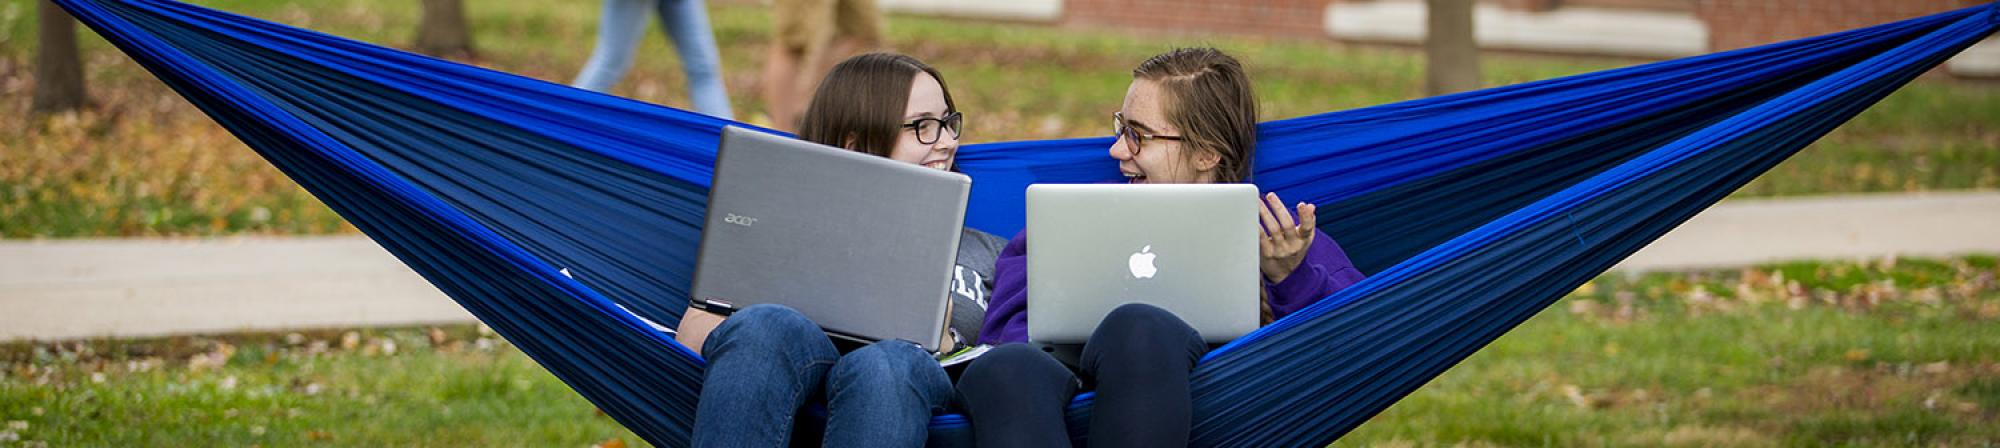 Two students sit in an outdoor hammock with their laptops